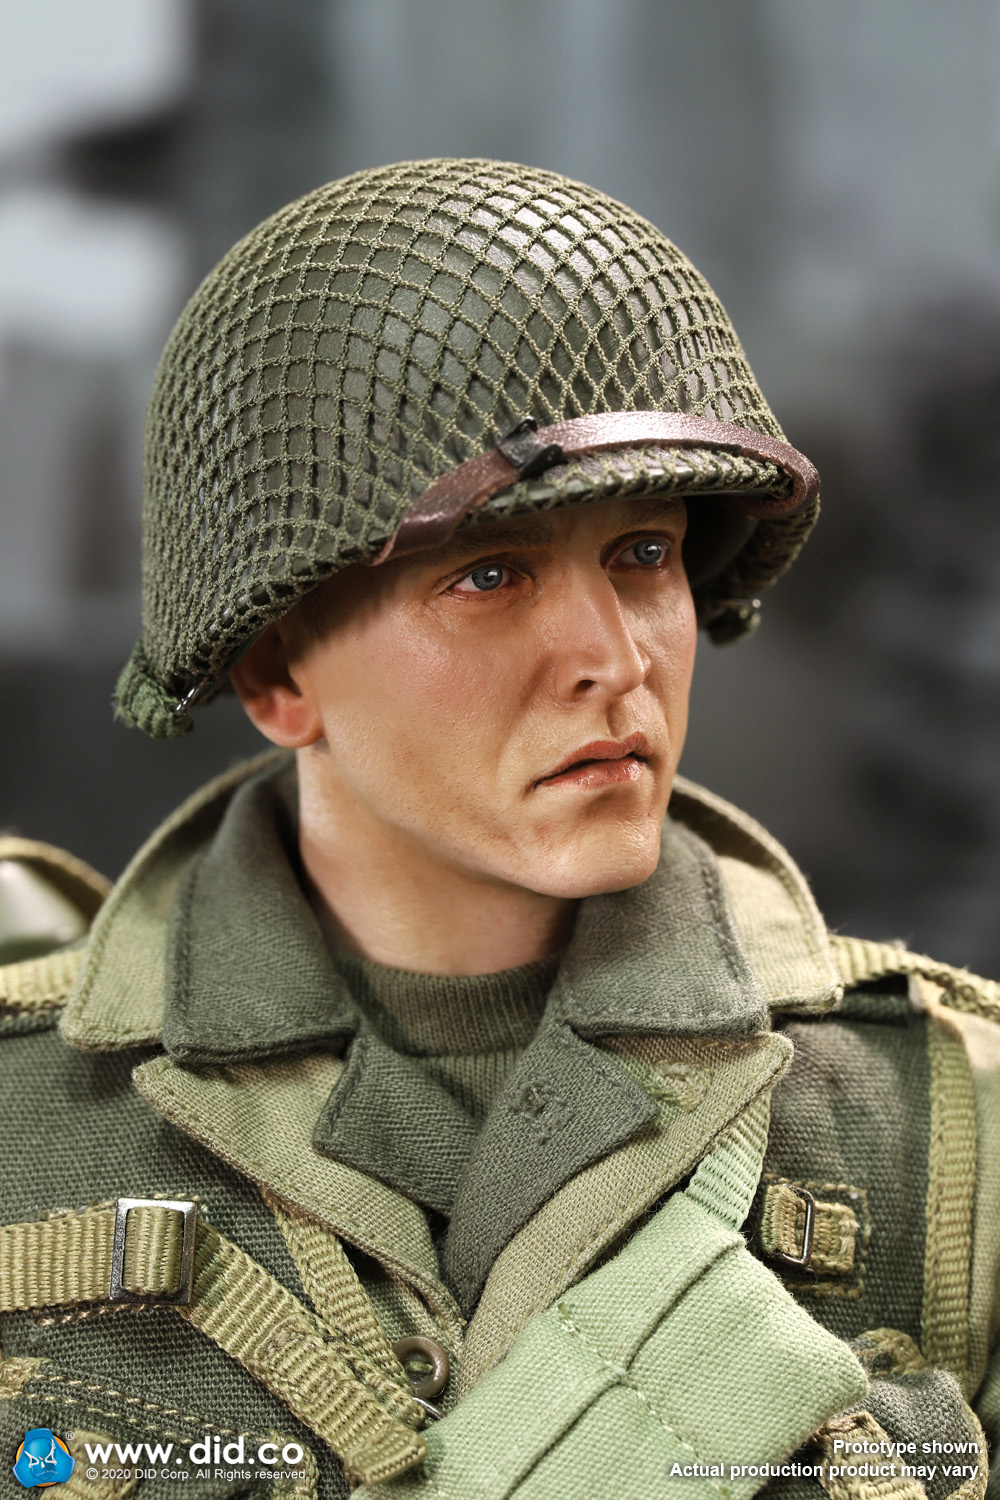 DiD - NEW PRODUCT: DiD: A80144 WWII US 2nd Ranger Battalion Series 4 Private Jackson 3521